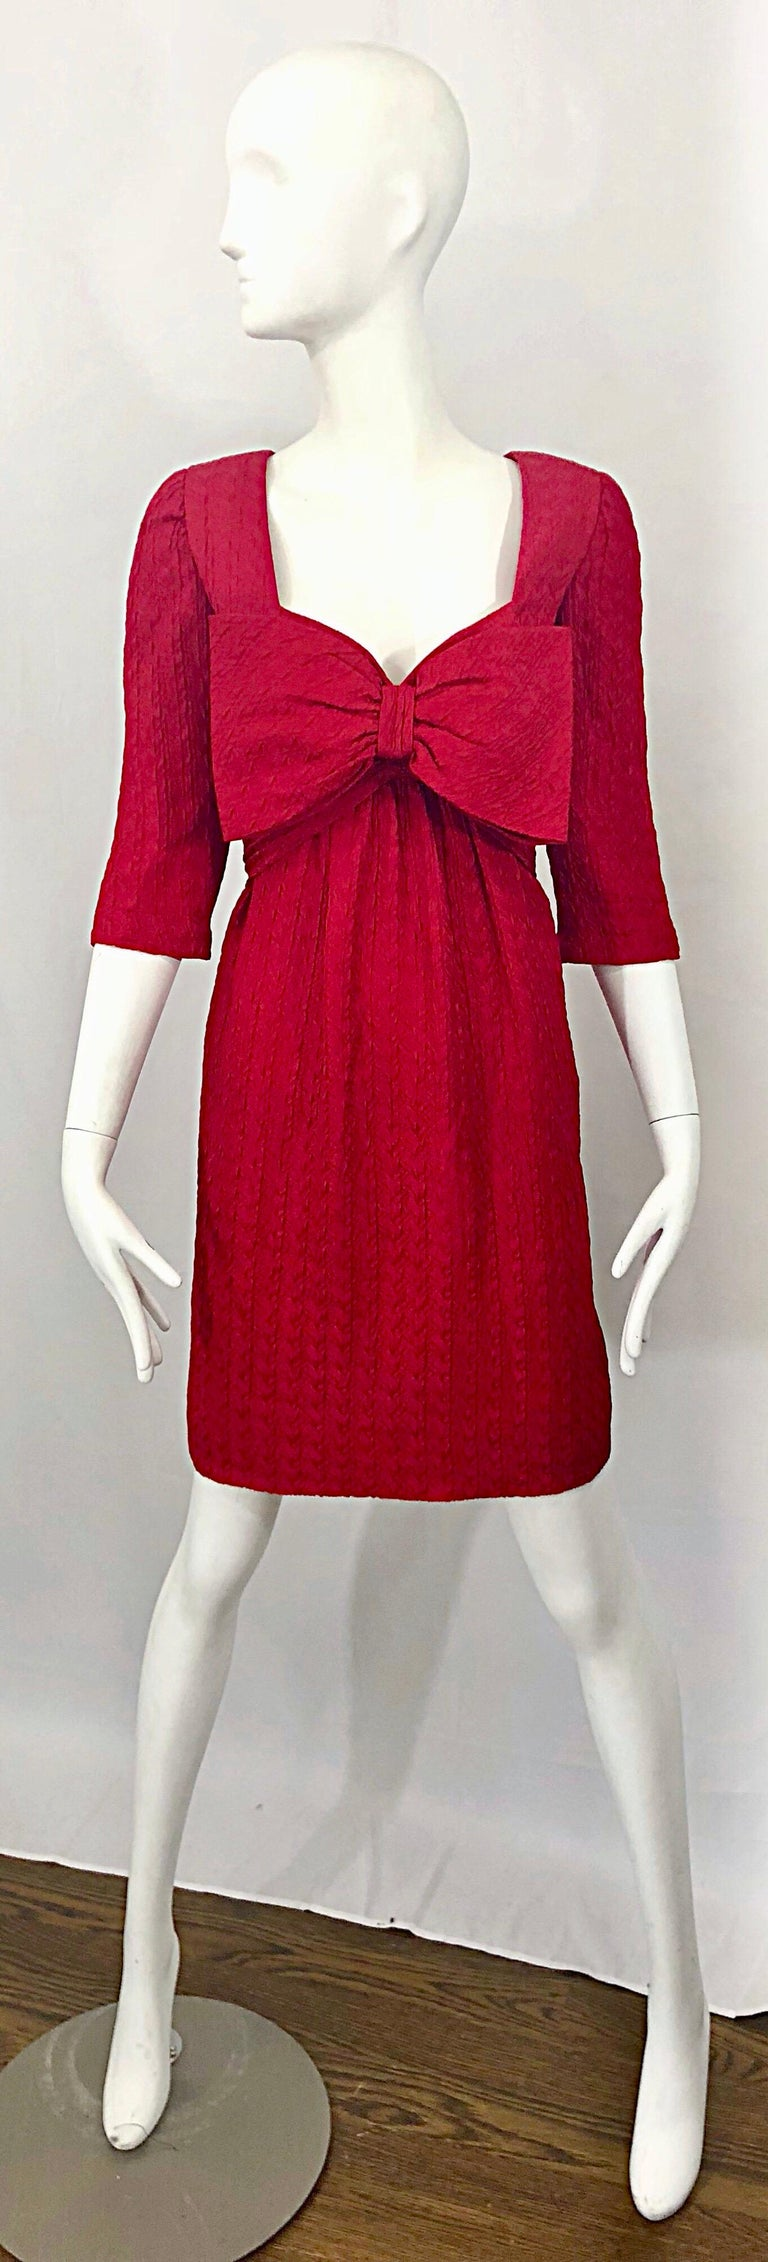 Gorgeous vintage early 90s OSCAR DE LA RENTA lipstick red 3/4 sleeve silk bow dress! Features a sweetheart neckline, with an oversized Avant Garde red bow attached at the bust. Hidden zipper up the back with hook-and-eye closure. 3/4 sleeves hit